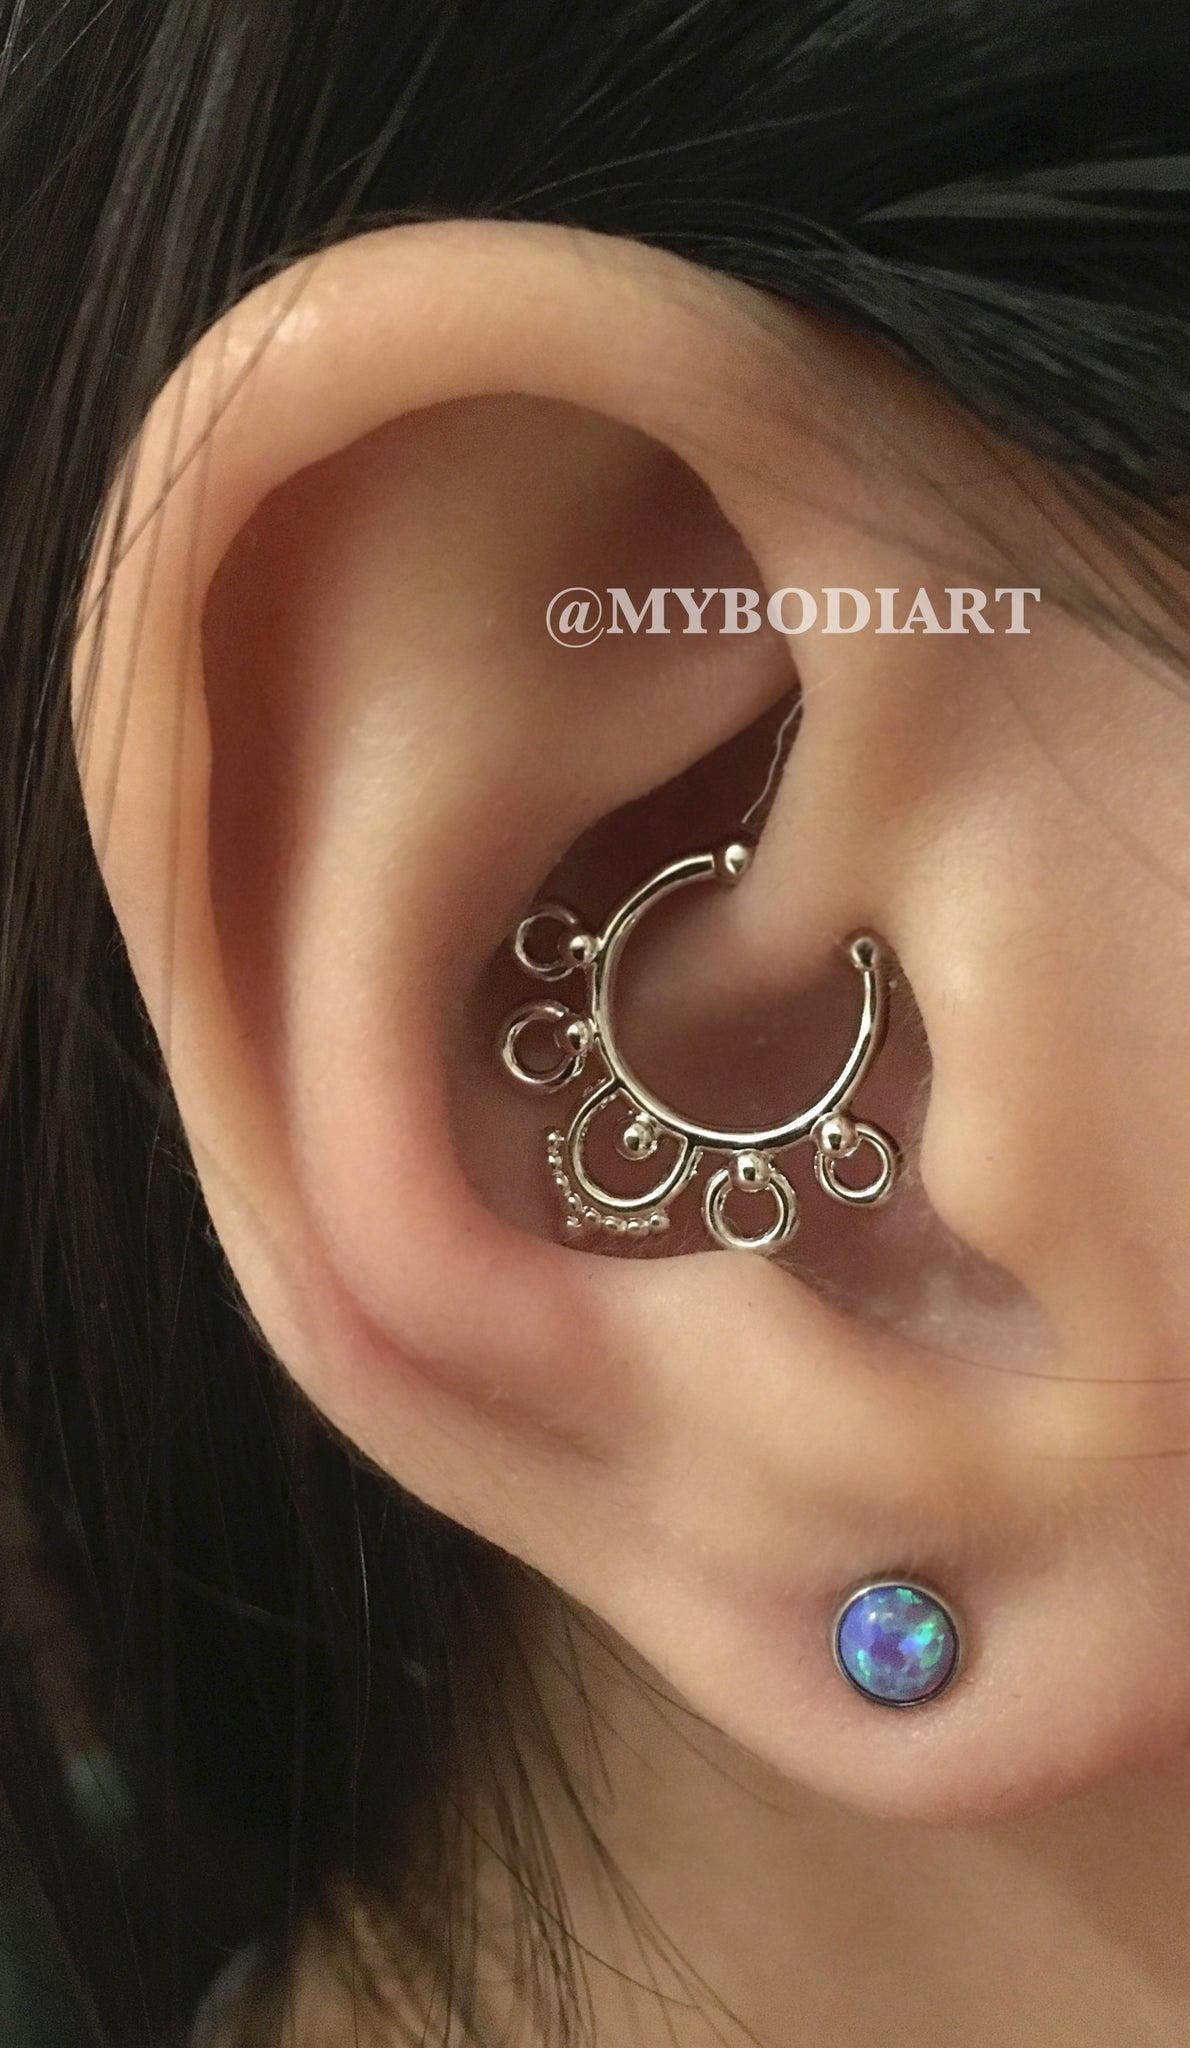 Pretty Ear Piercing Ideas for Teens - Gold Cartilage Jewelry, Daith Ring, Rook Hoop, Opal Lobe Earring Studs - www.MyBodiArt.com